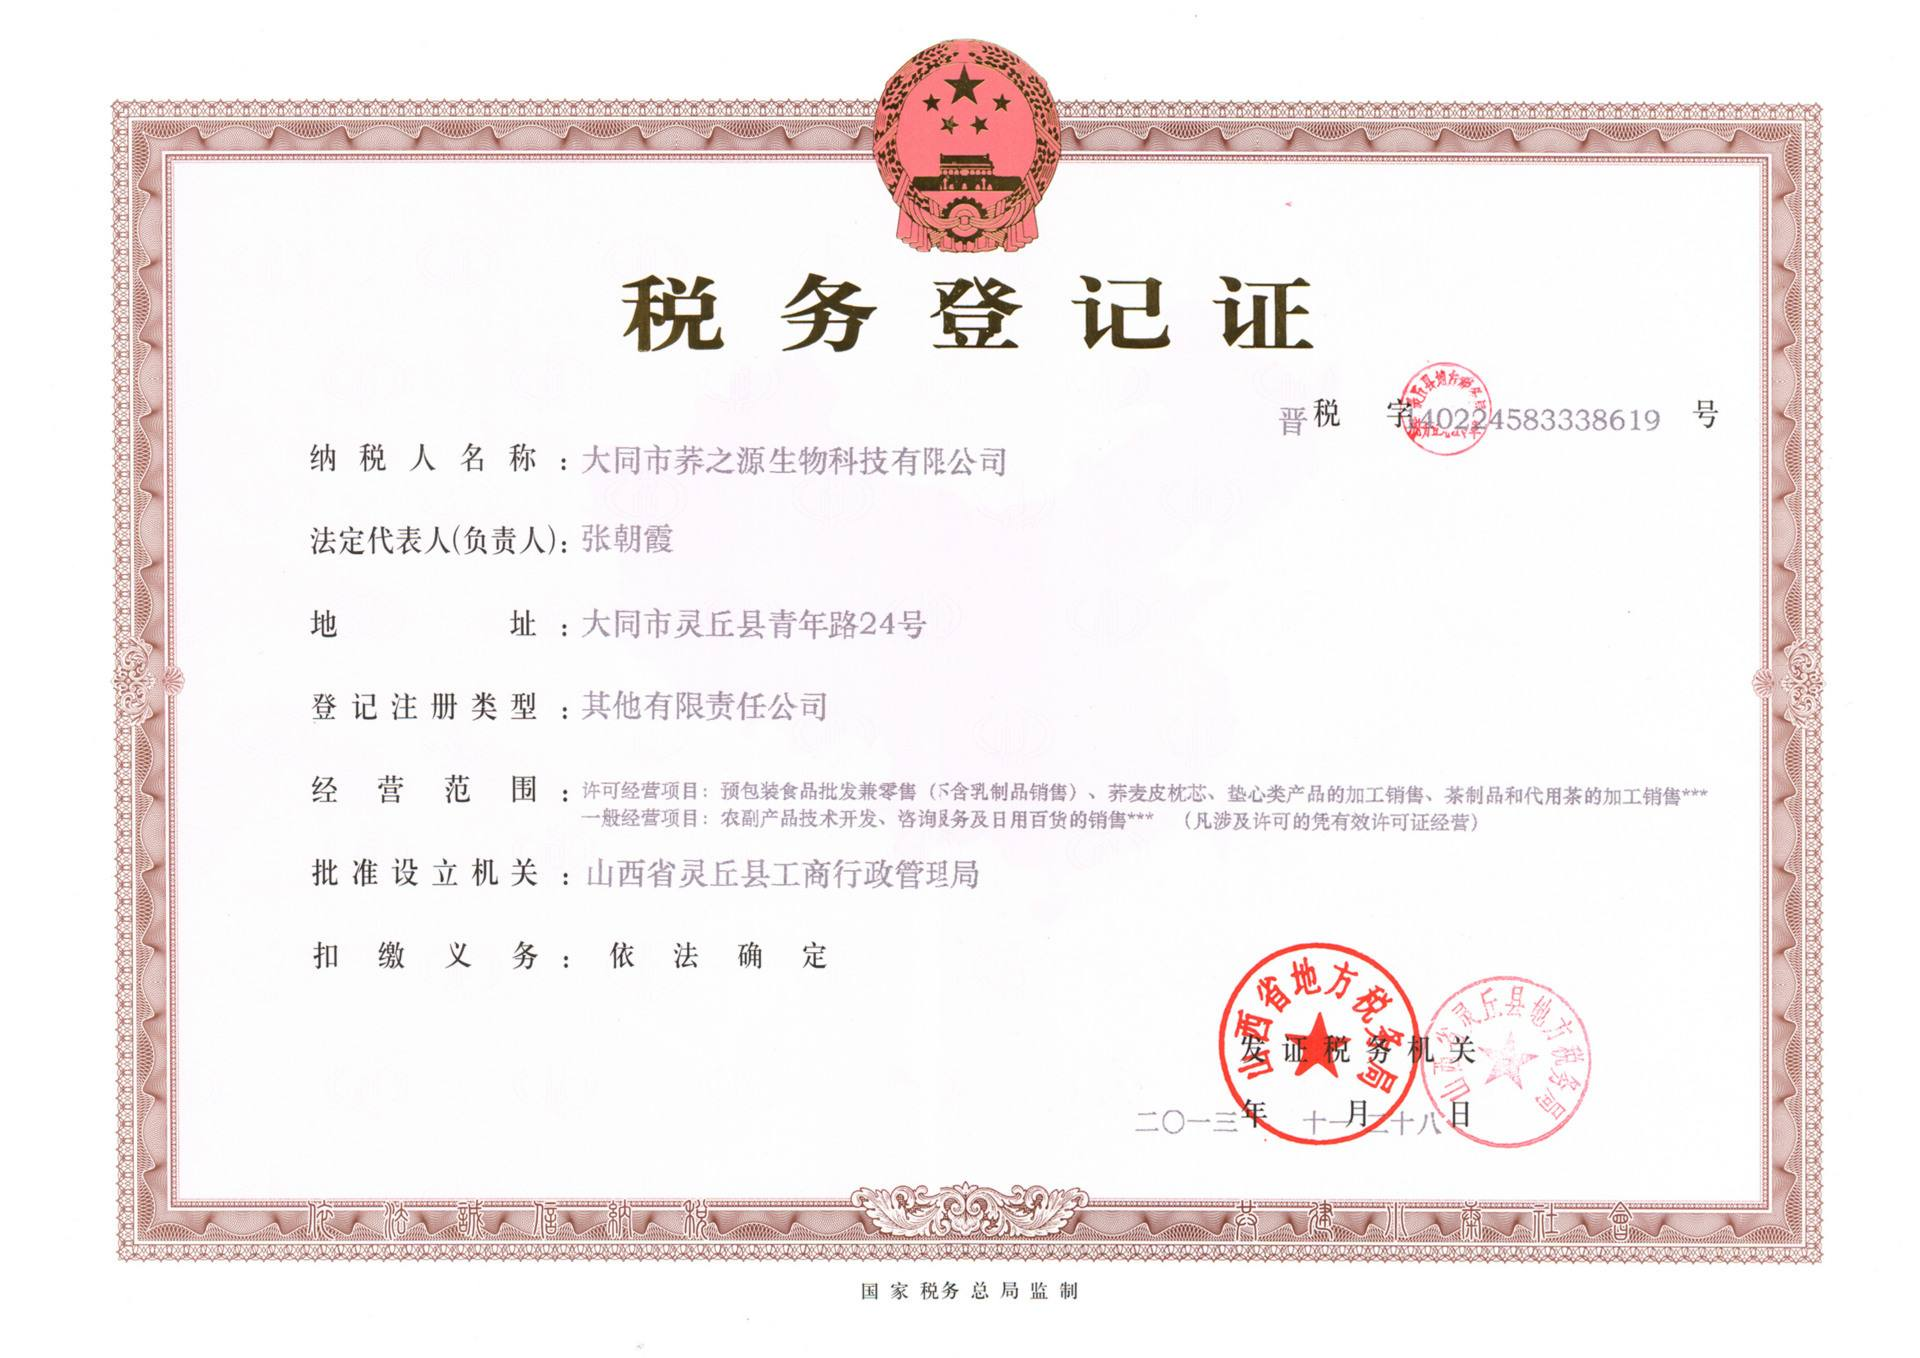 China Tax Registration Certificate Example.jpg